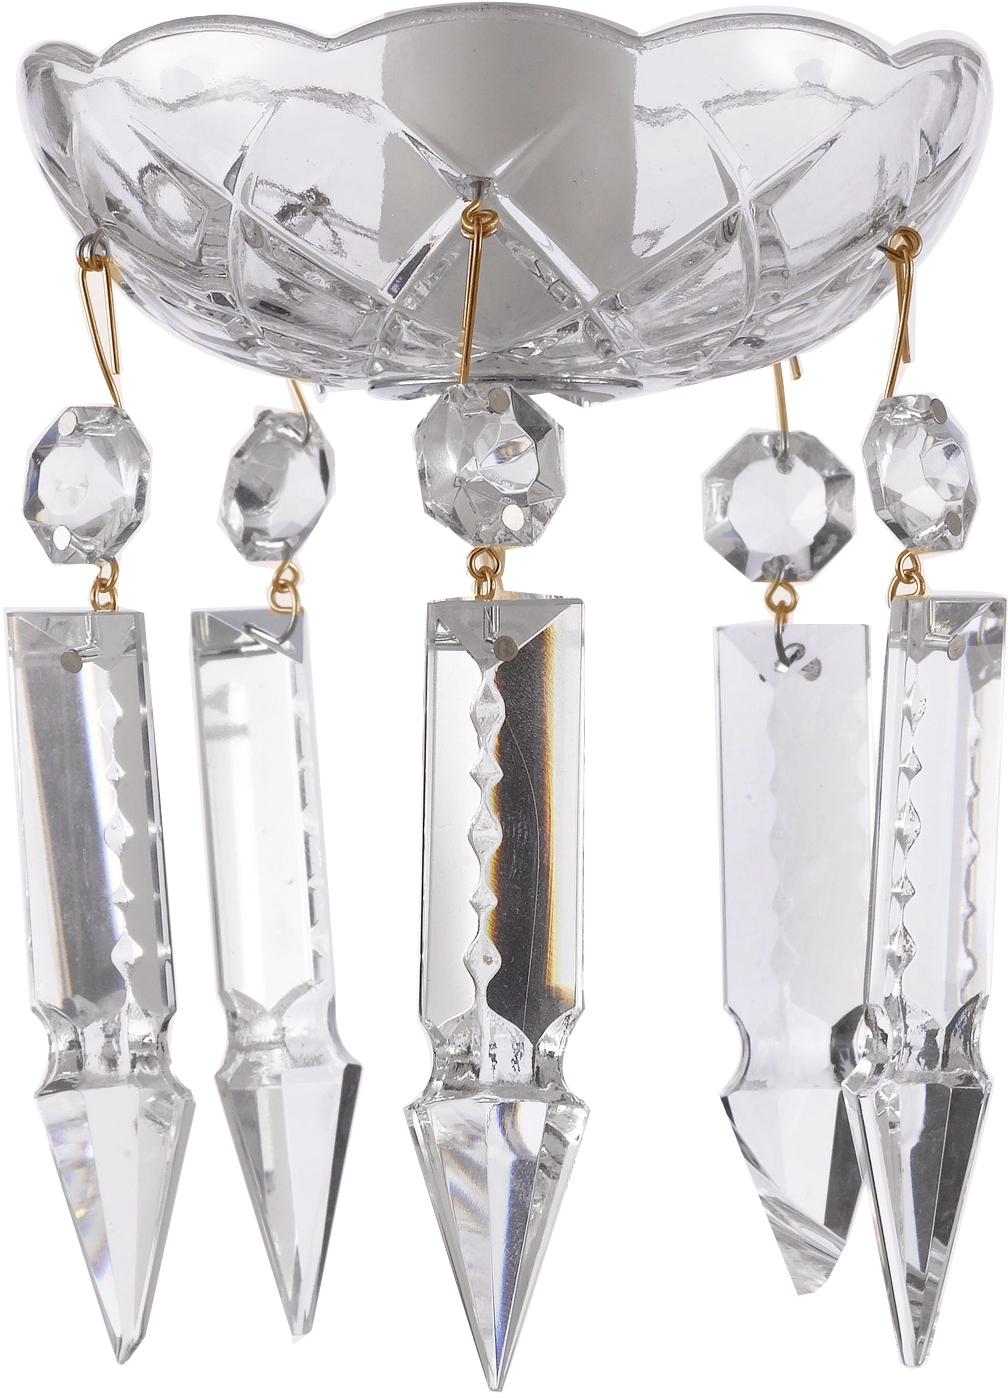 Chandelier Chandeliers Crystal Chandelier Crystal Chandeliers In Lead Crystal Chandelier (Image 9 of 15)